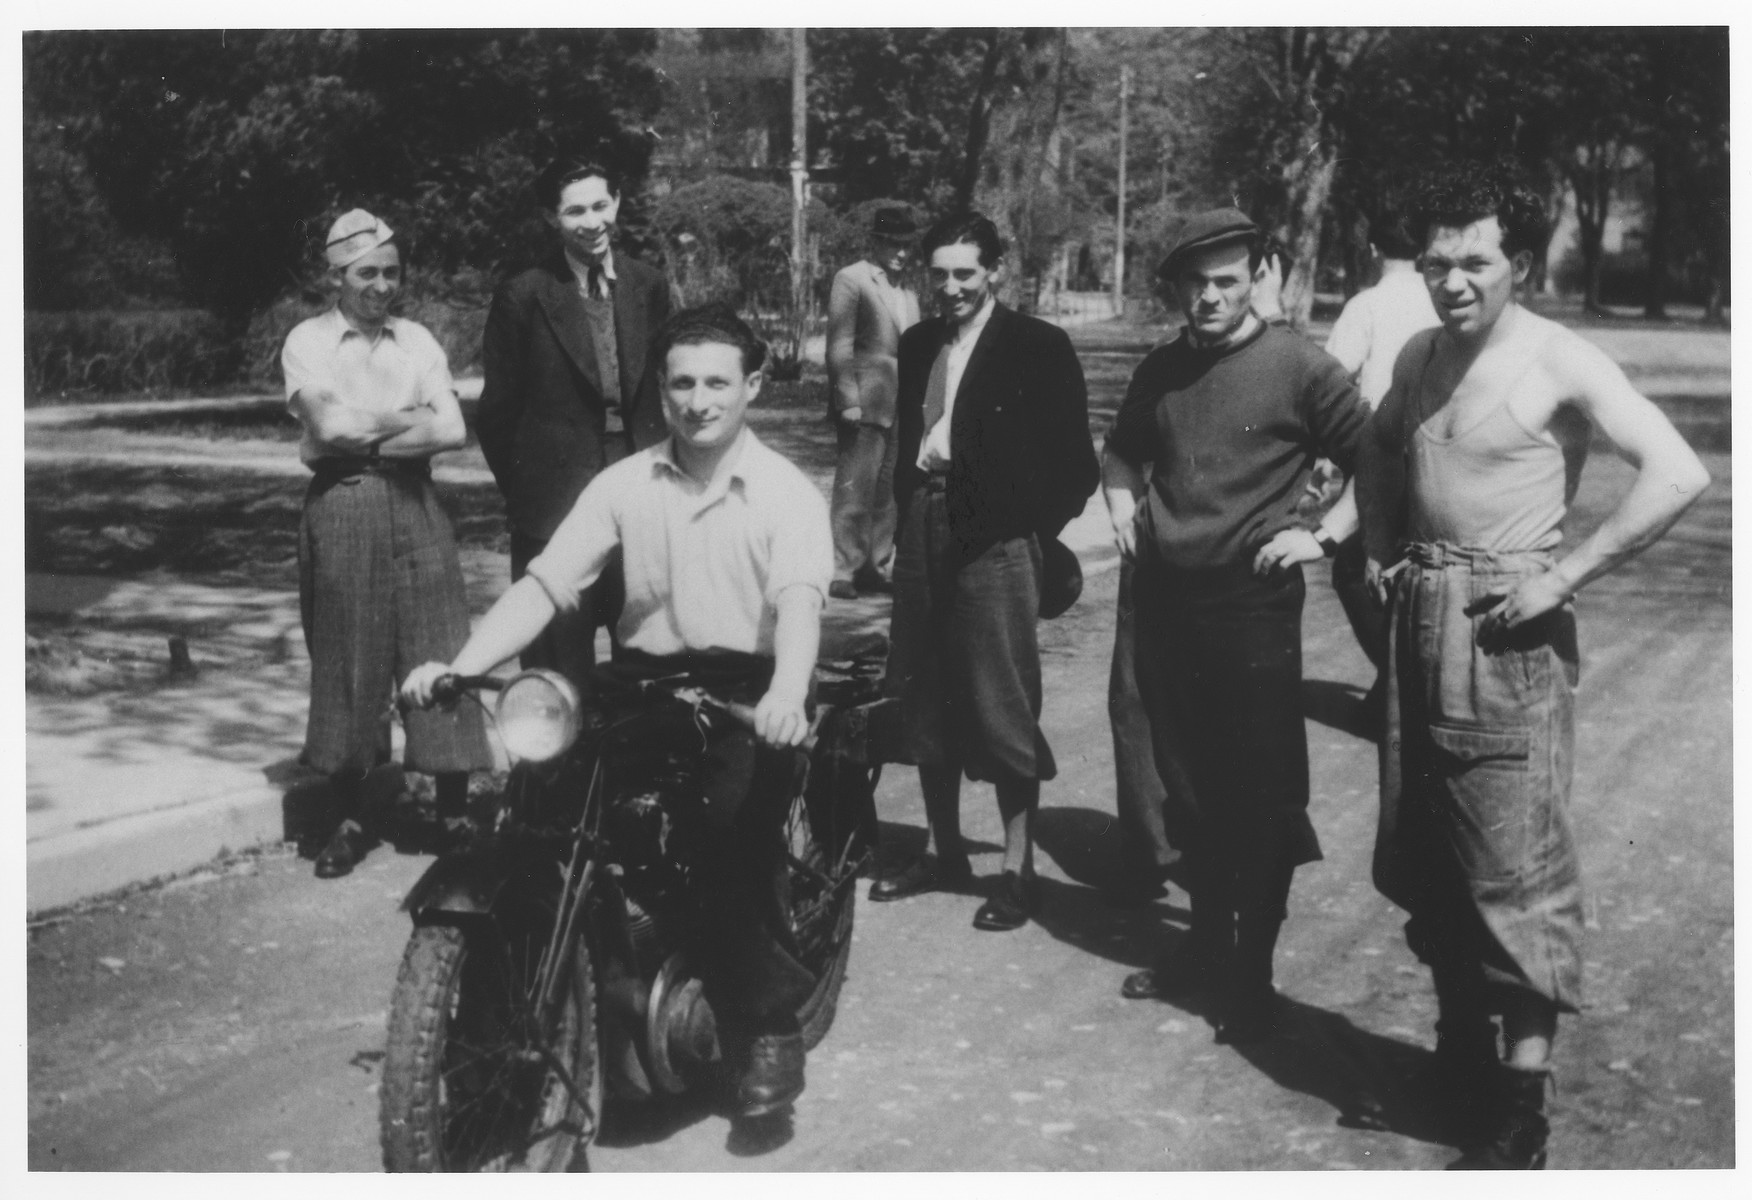 Zdenek Mermelstein rides a motorcycle in the Gabersee displaced persons camp.  Standing second from the left is Asher Zelig Shlomowitz.  Also [probably] pictured second from the right is Mendel Senderovits.